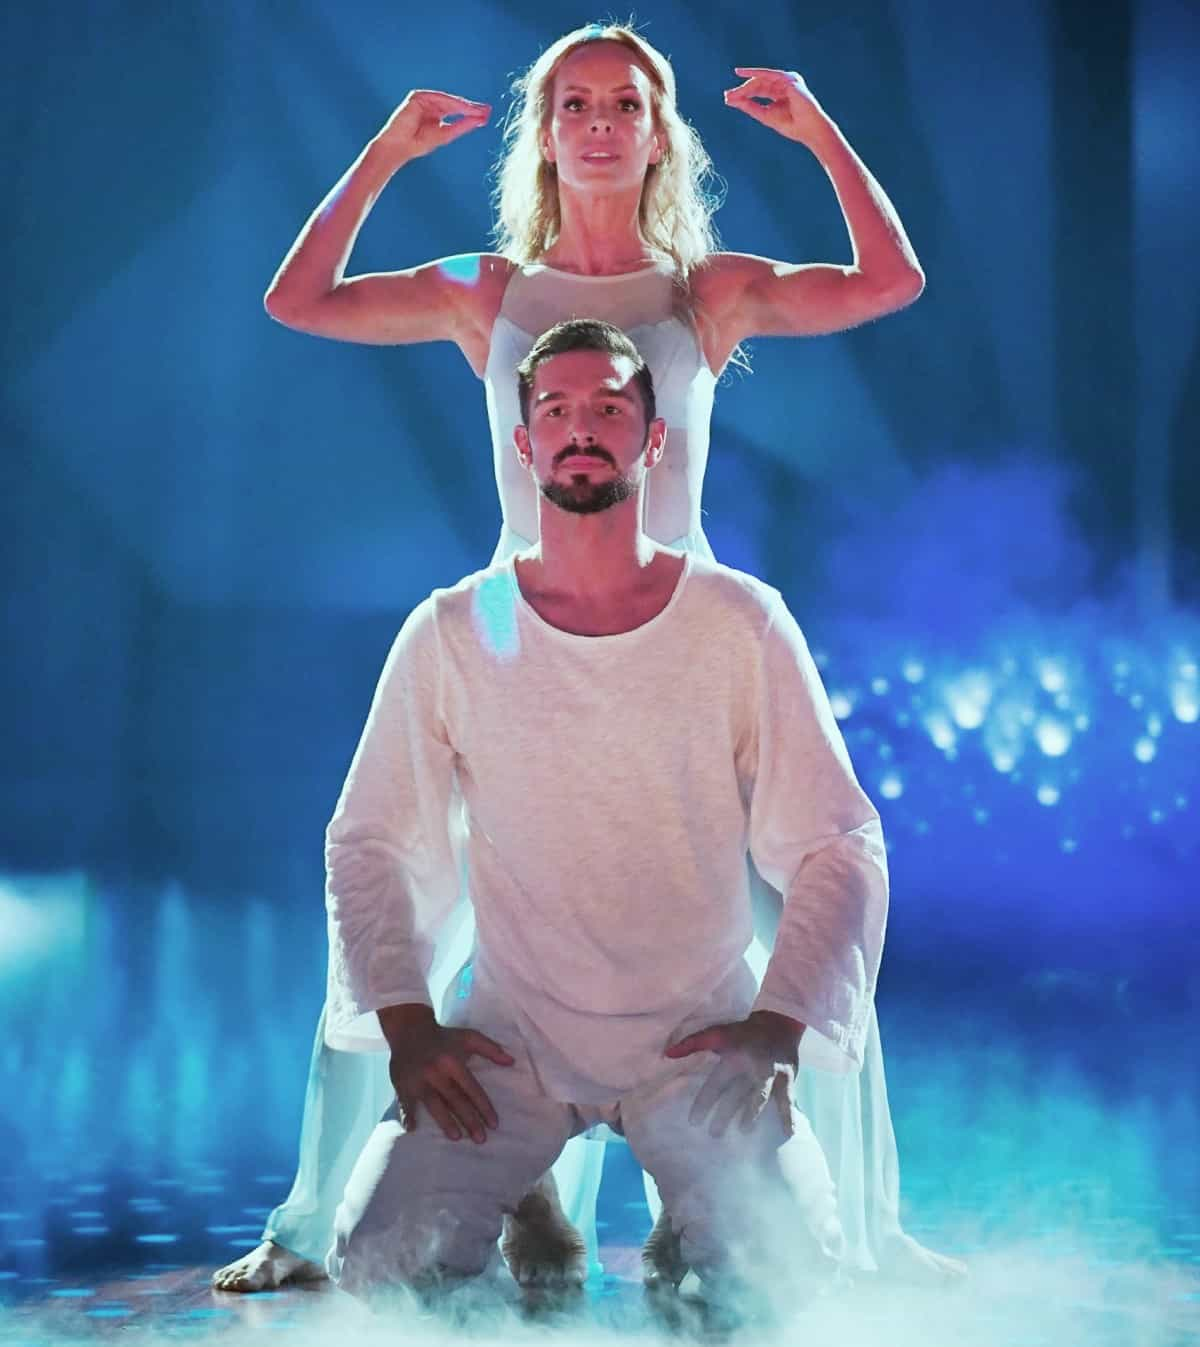 Benjamin Piwko - Isabel Edvardsson bei Let's dance 2019 am 7.6.2019